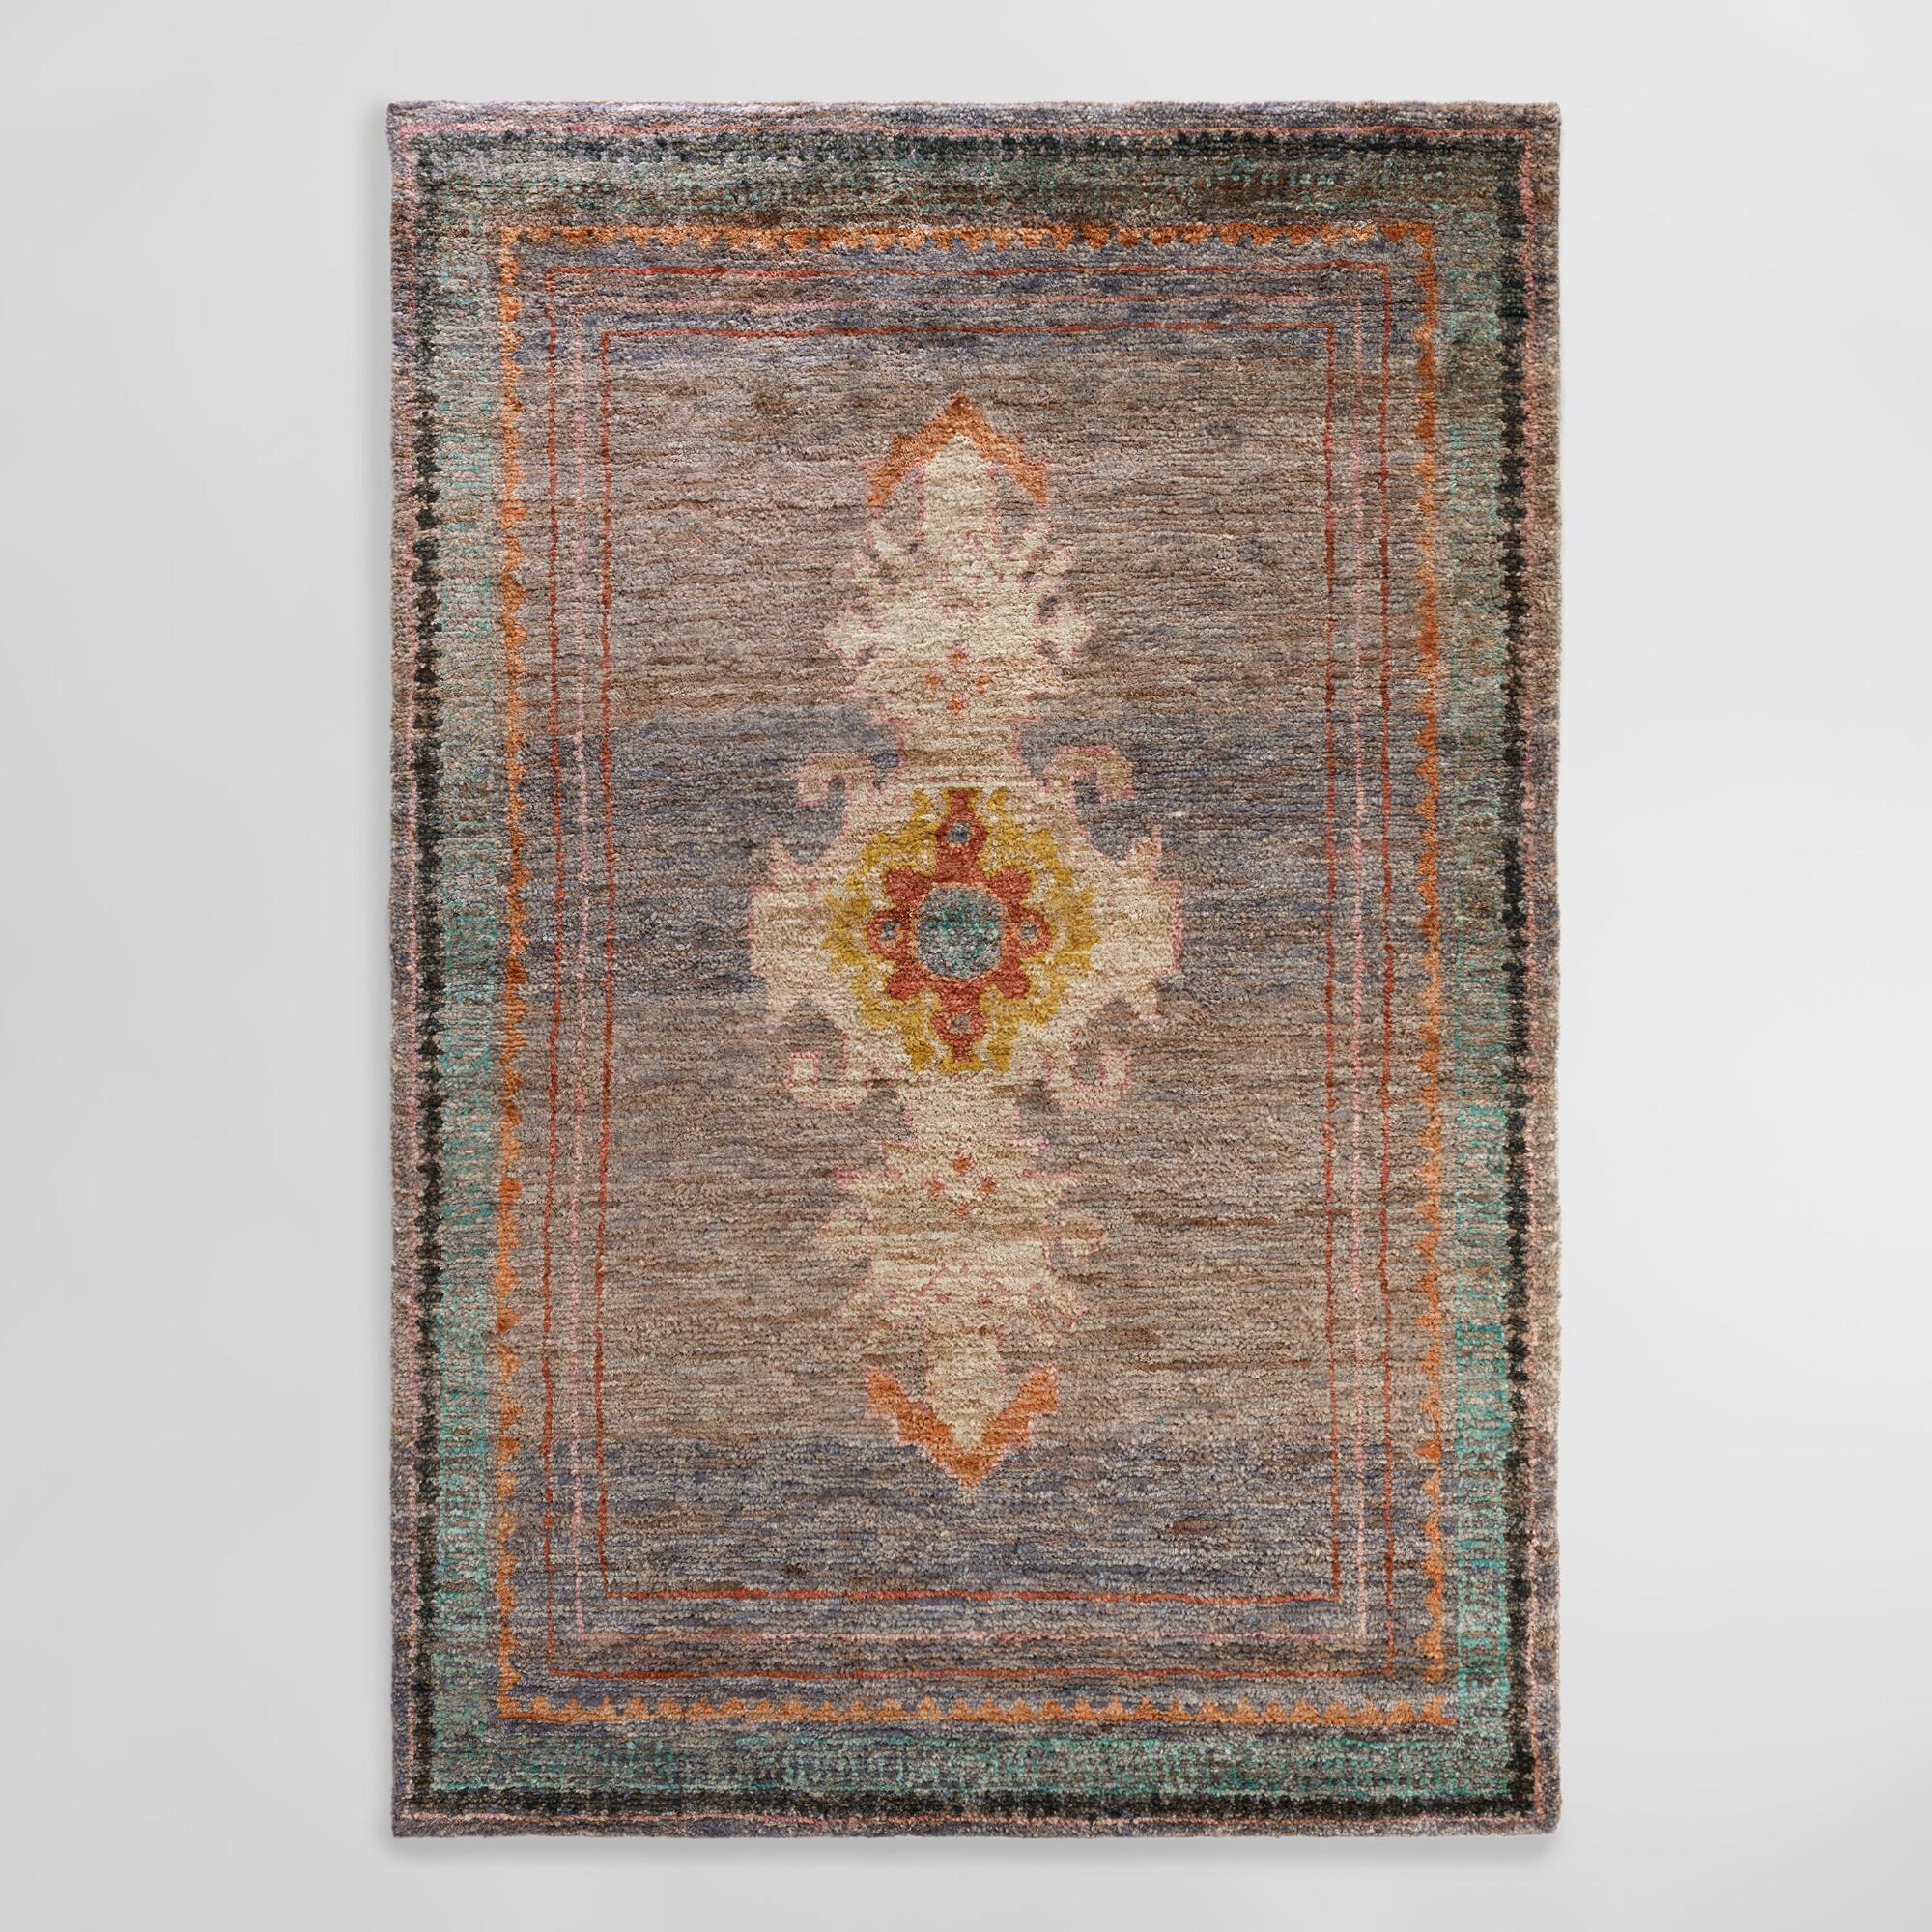 6'x9' Hand Knotted Washed Jute Izmir Area Rug